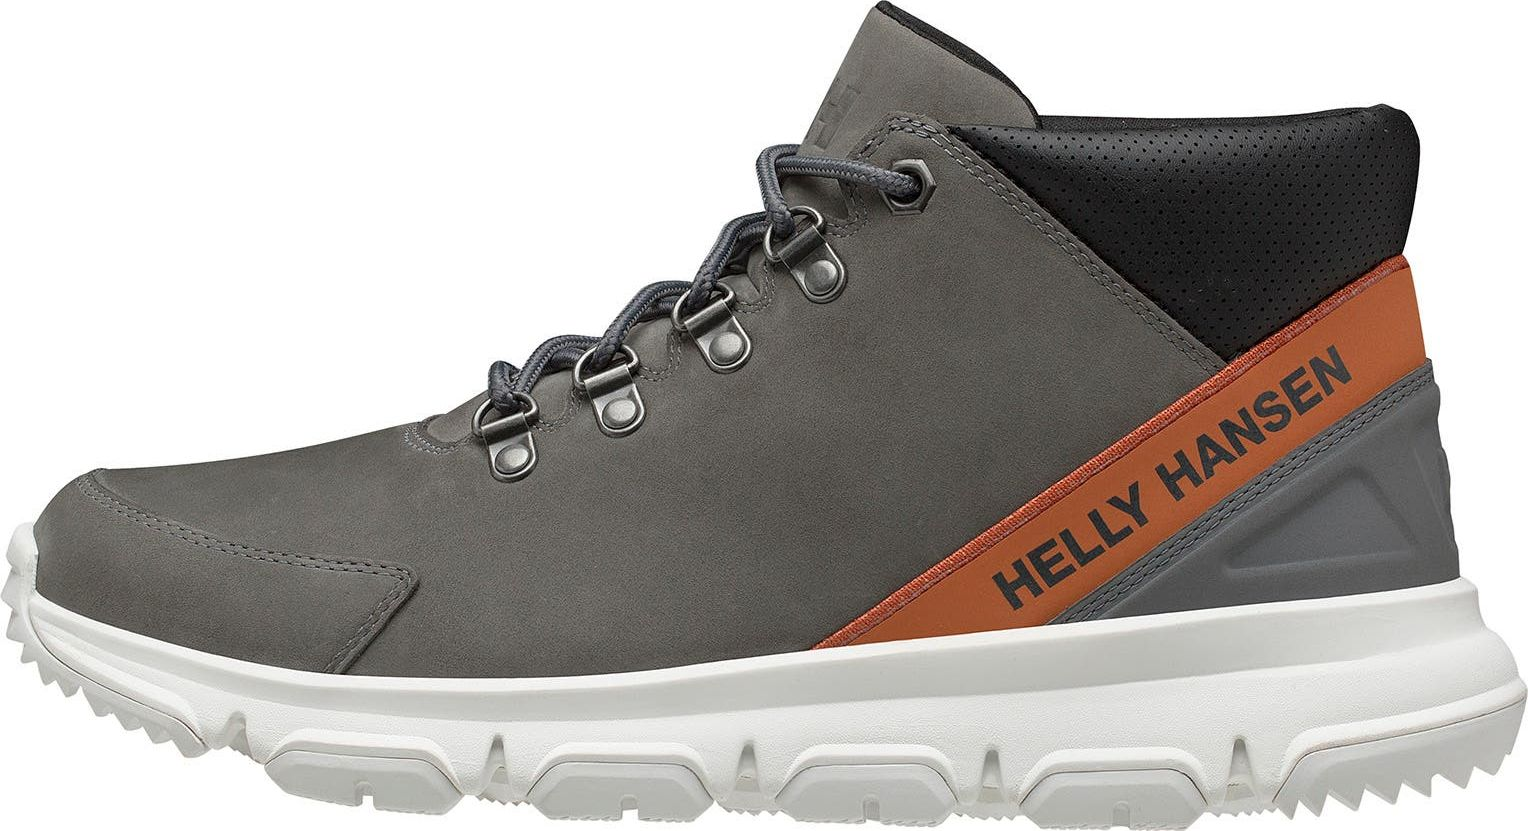 HELLY HANSEN Fendvard Boot Charcoal/Burnt Orange 45